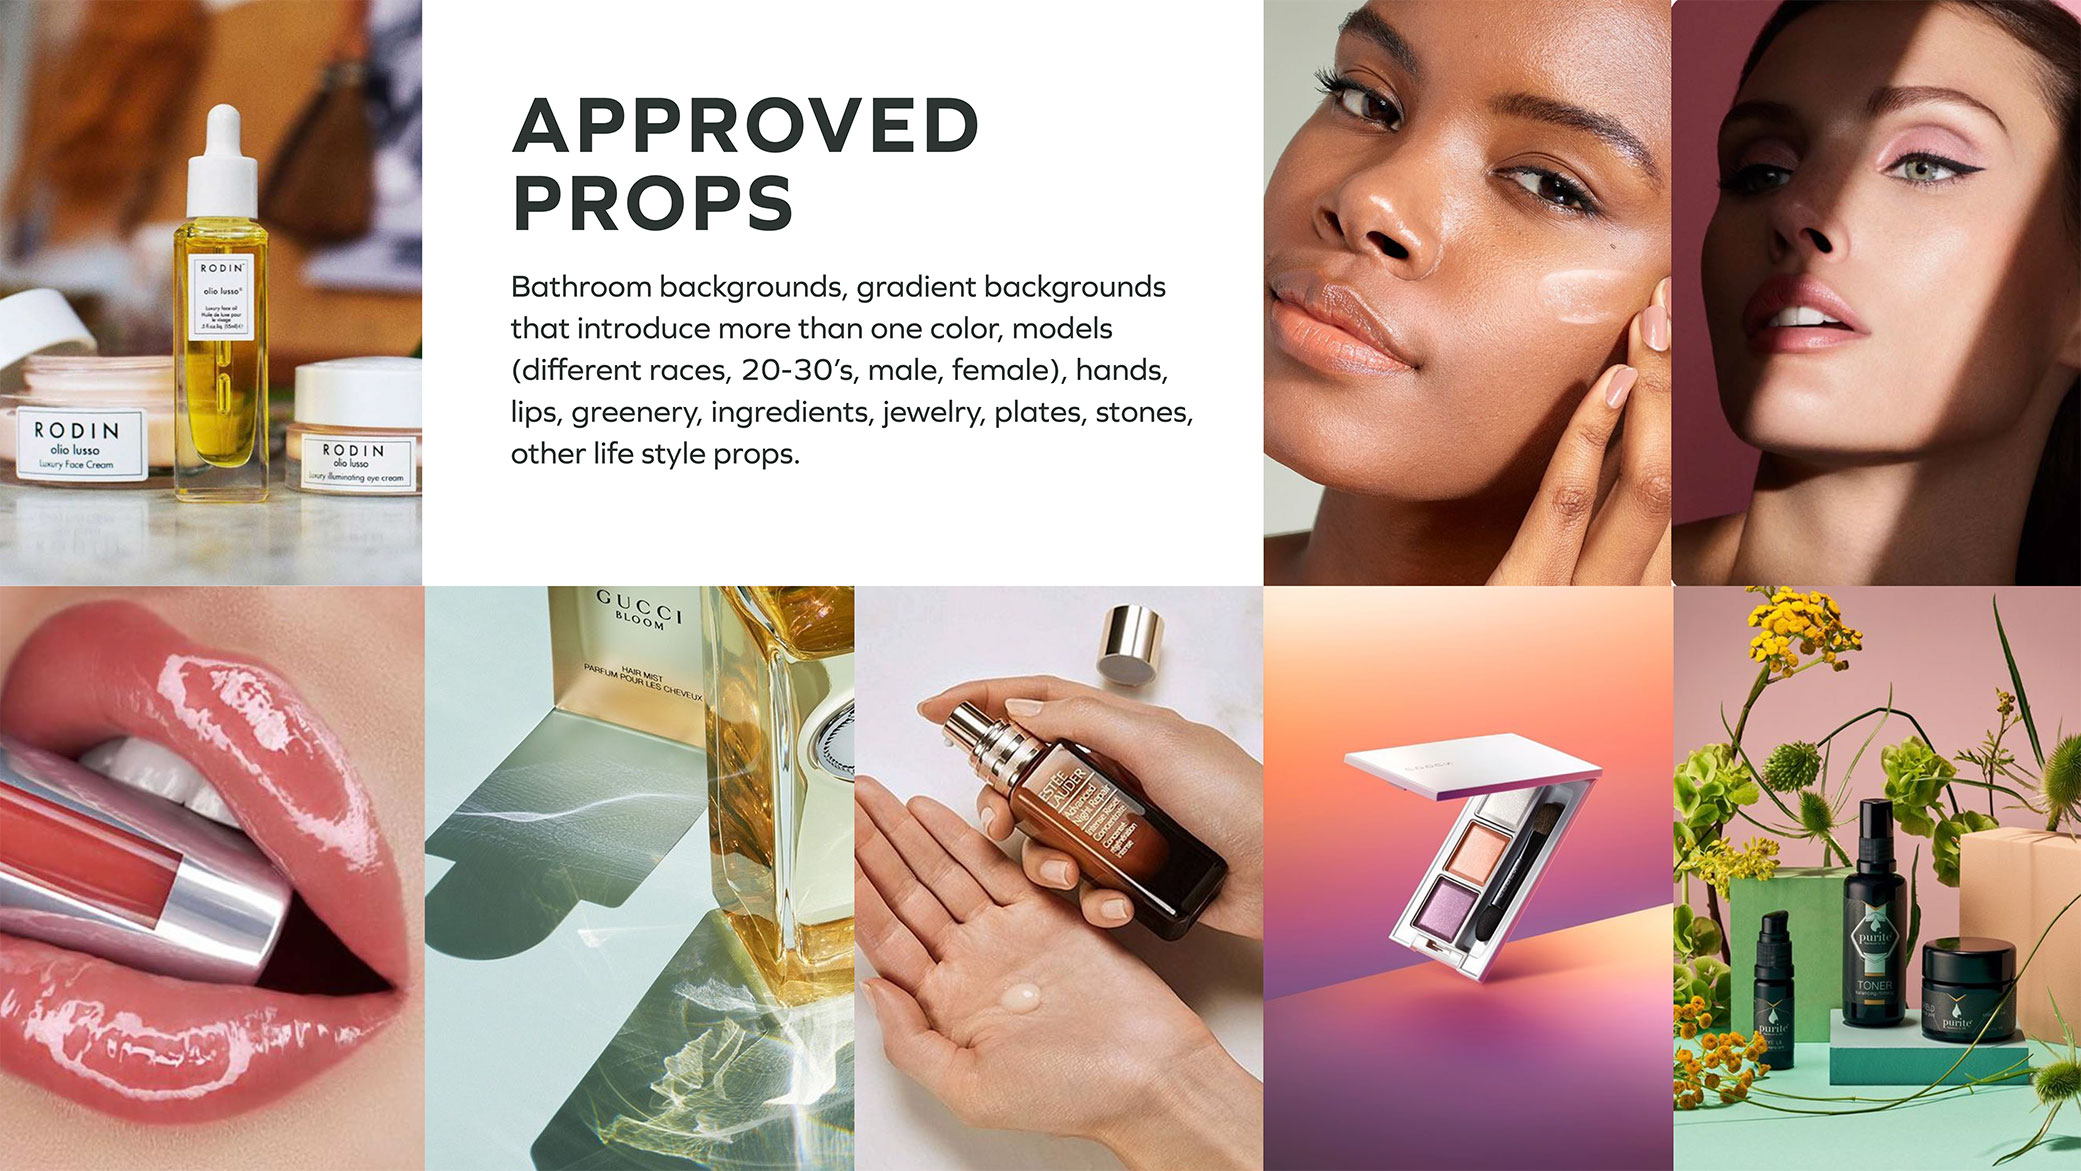 CTRL Cosmetics props inspiration board showcasing different types of images with model's hands, lips and backgrounds.